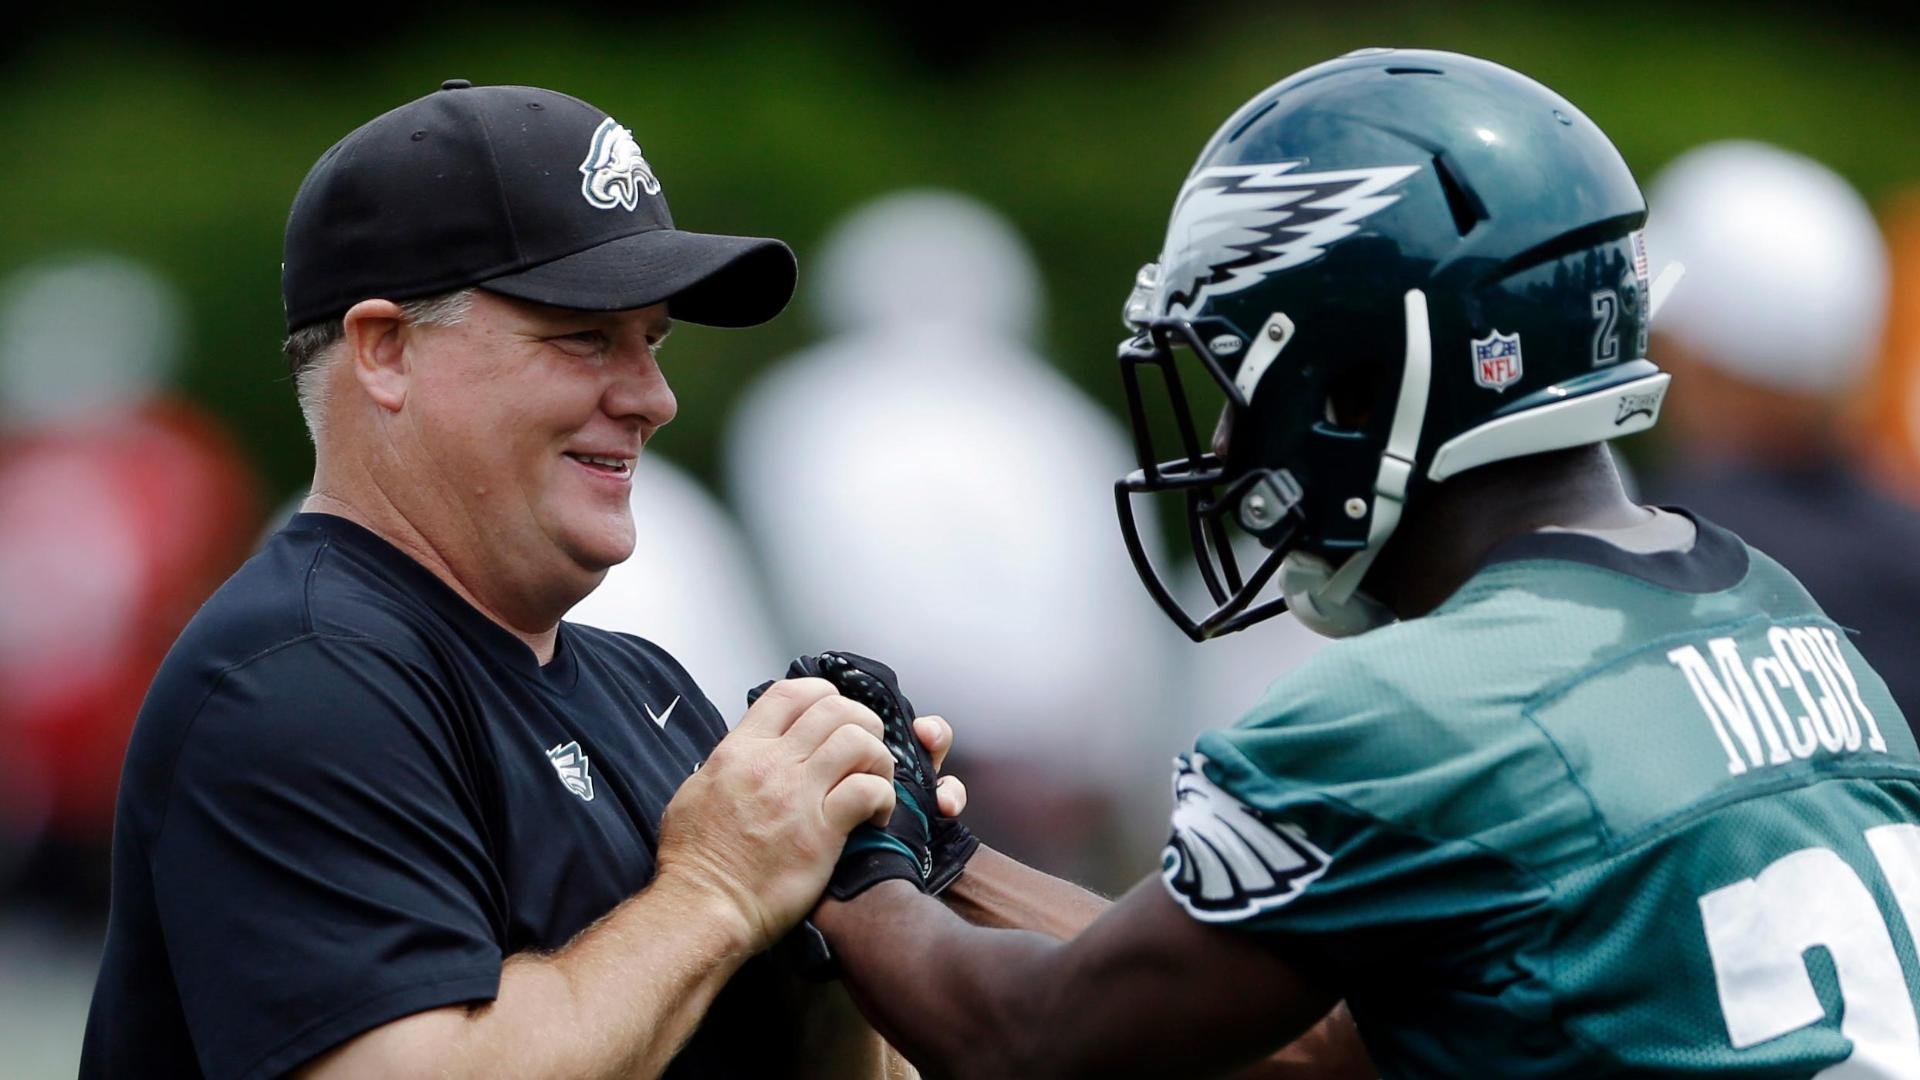 http://a.espncdn.com/media/motion/2015/0506/dm_150506_nfl_debate_mccoy_comments_chip_kelly992/dm_150506_nfl_debate_mccoy_comments_chip_kelly992.jpg